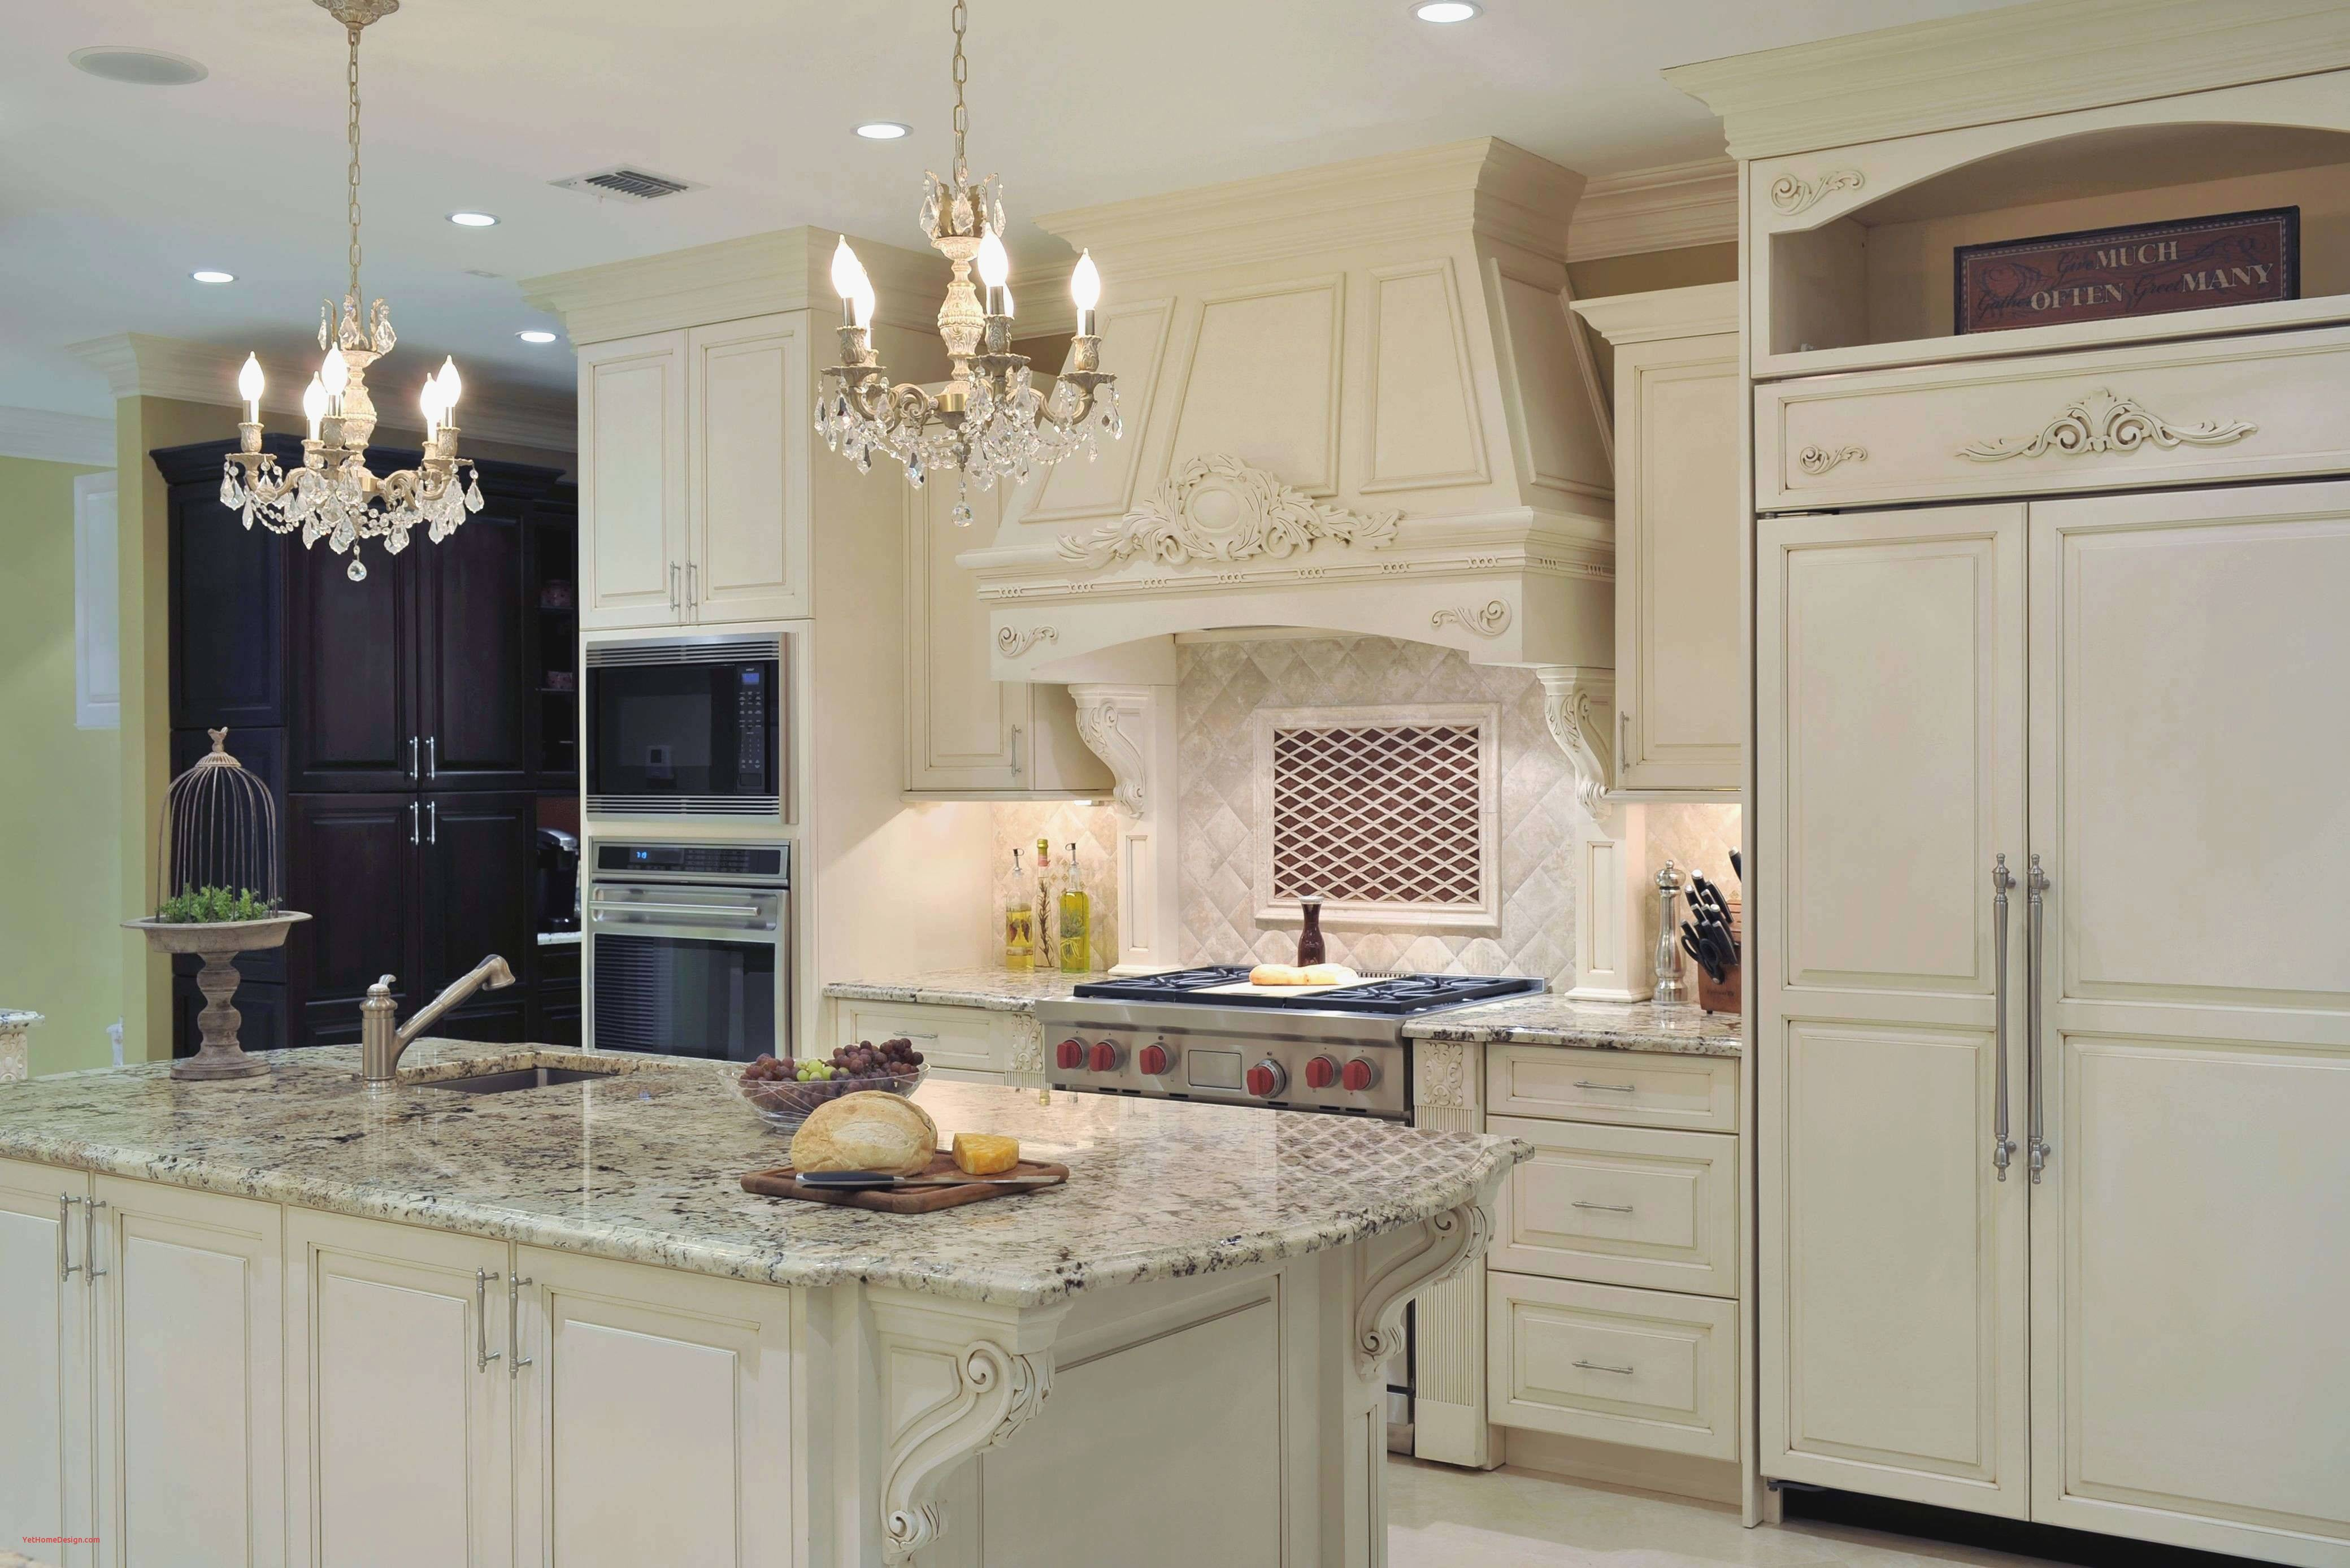 white kitchen cabinets with granite countertops trends kitchen cabinets makeover ideas new how much is kitchen cabinet of white kitchen cabinets with granite countertops